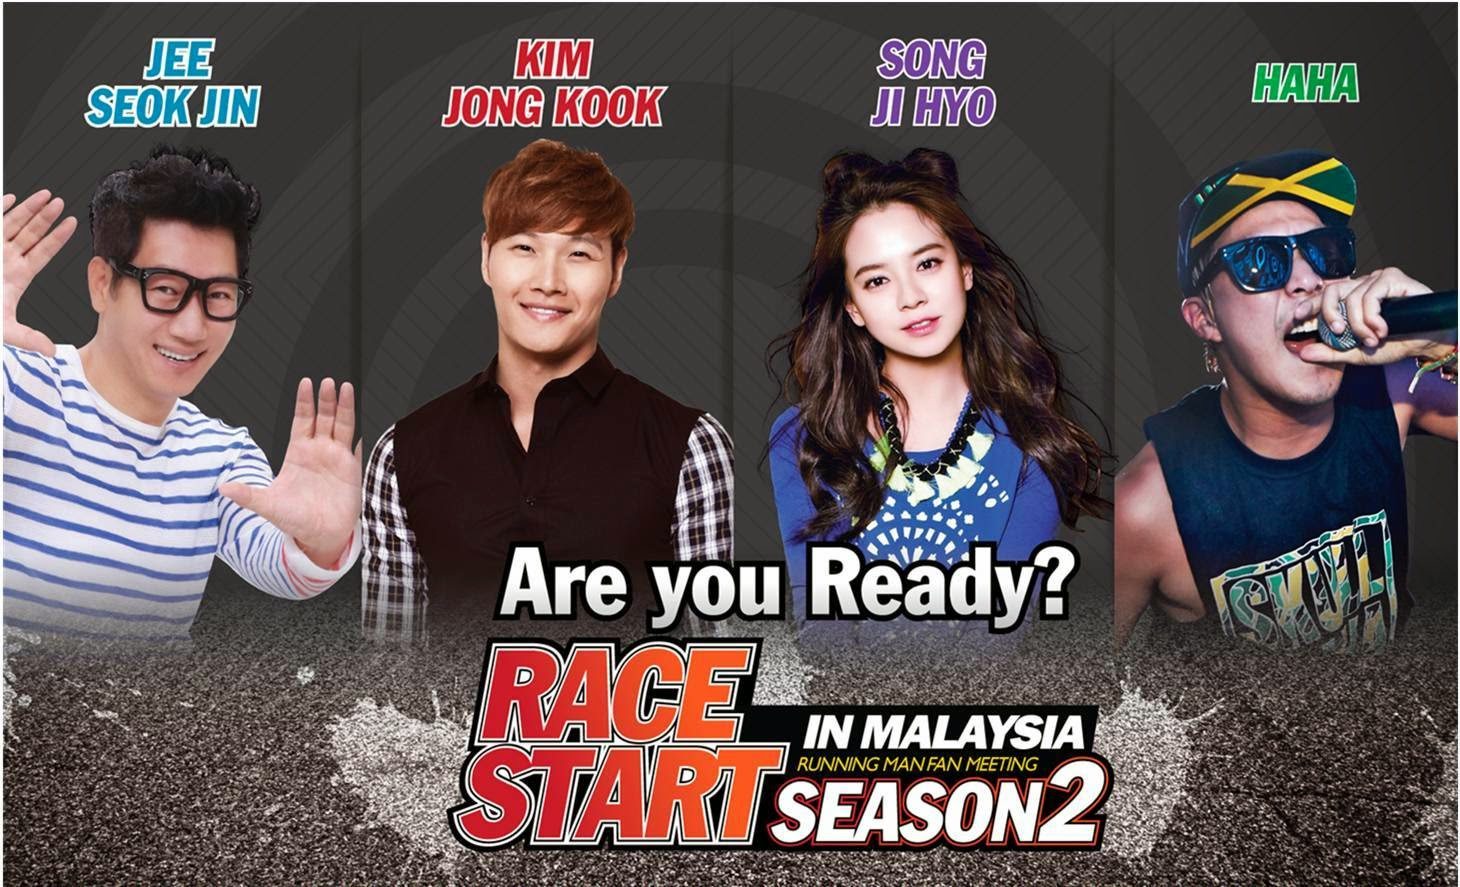 Running Man, 5 Unforgettable & Painful Moments on Running Man, Race start season 2, Kim Jong Kook, haha, Song Ji Hyo, Jee Seok Jin, korean entertainment, korean wave